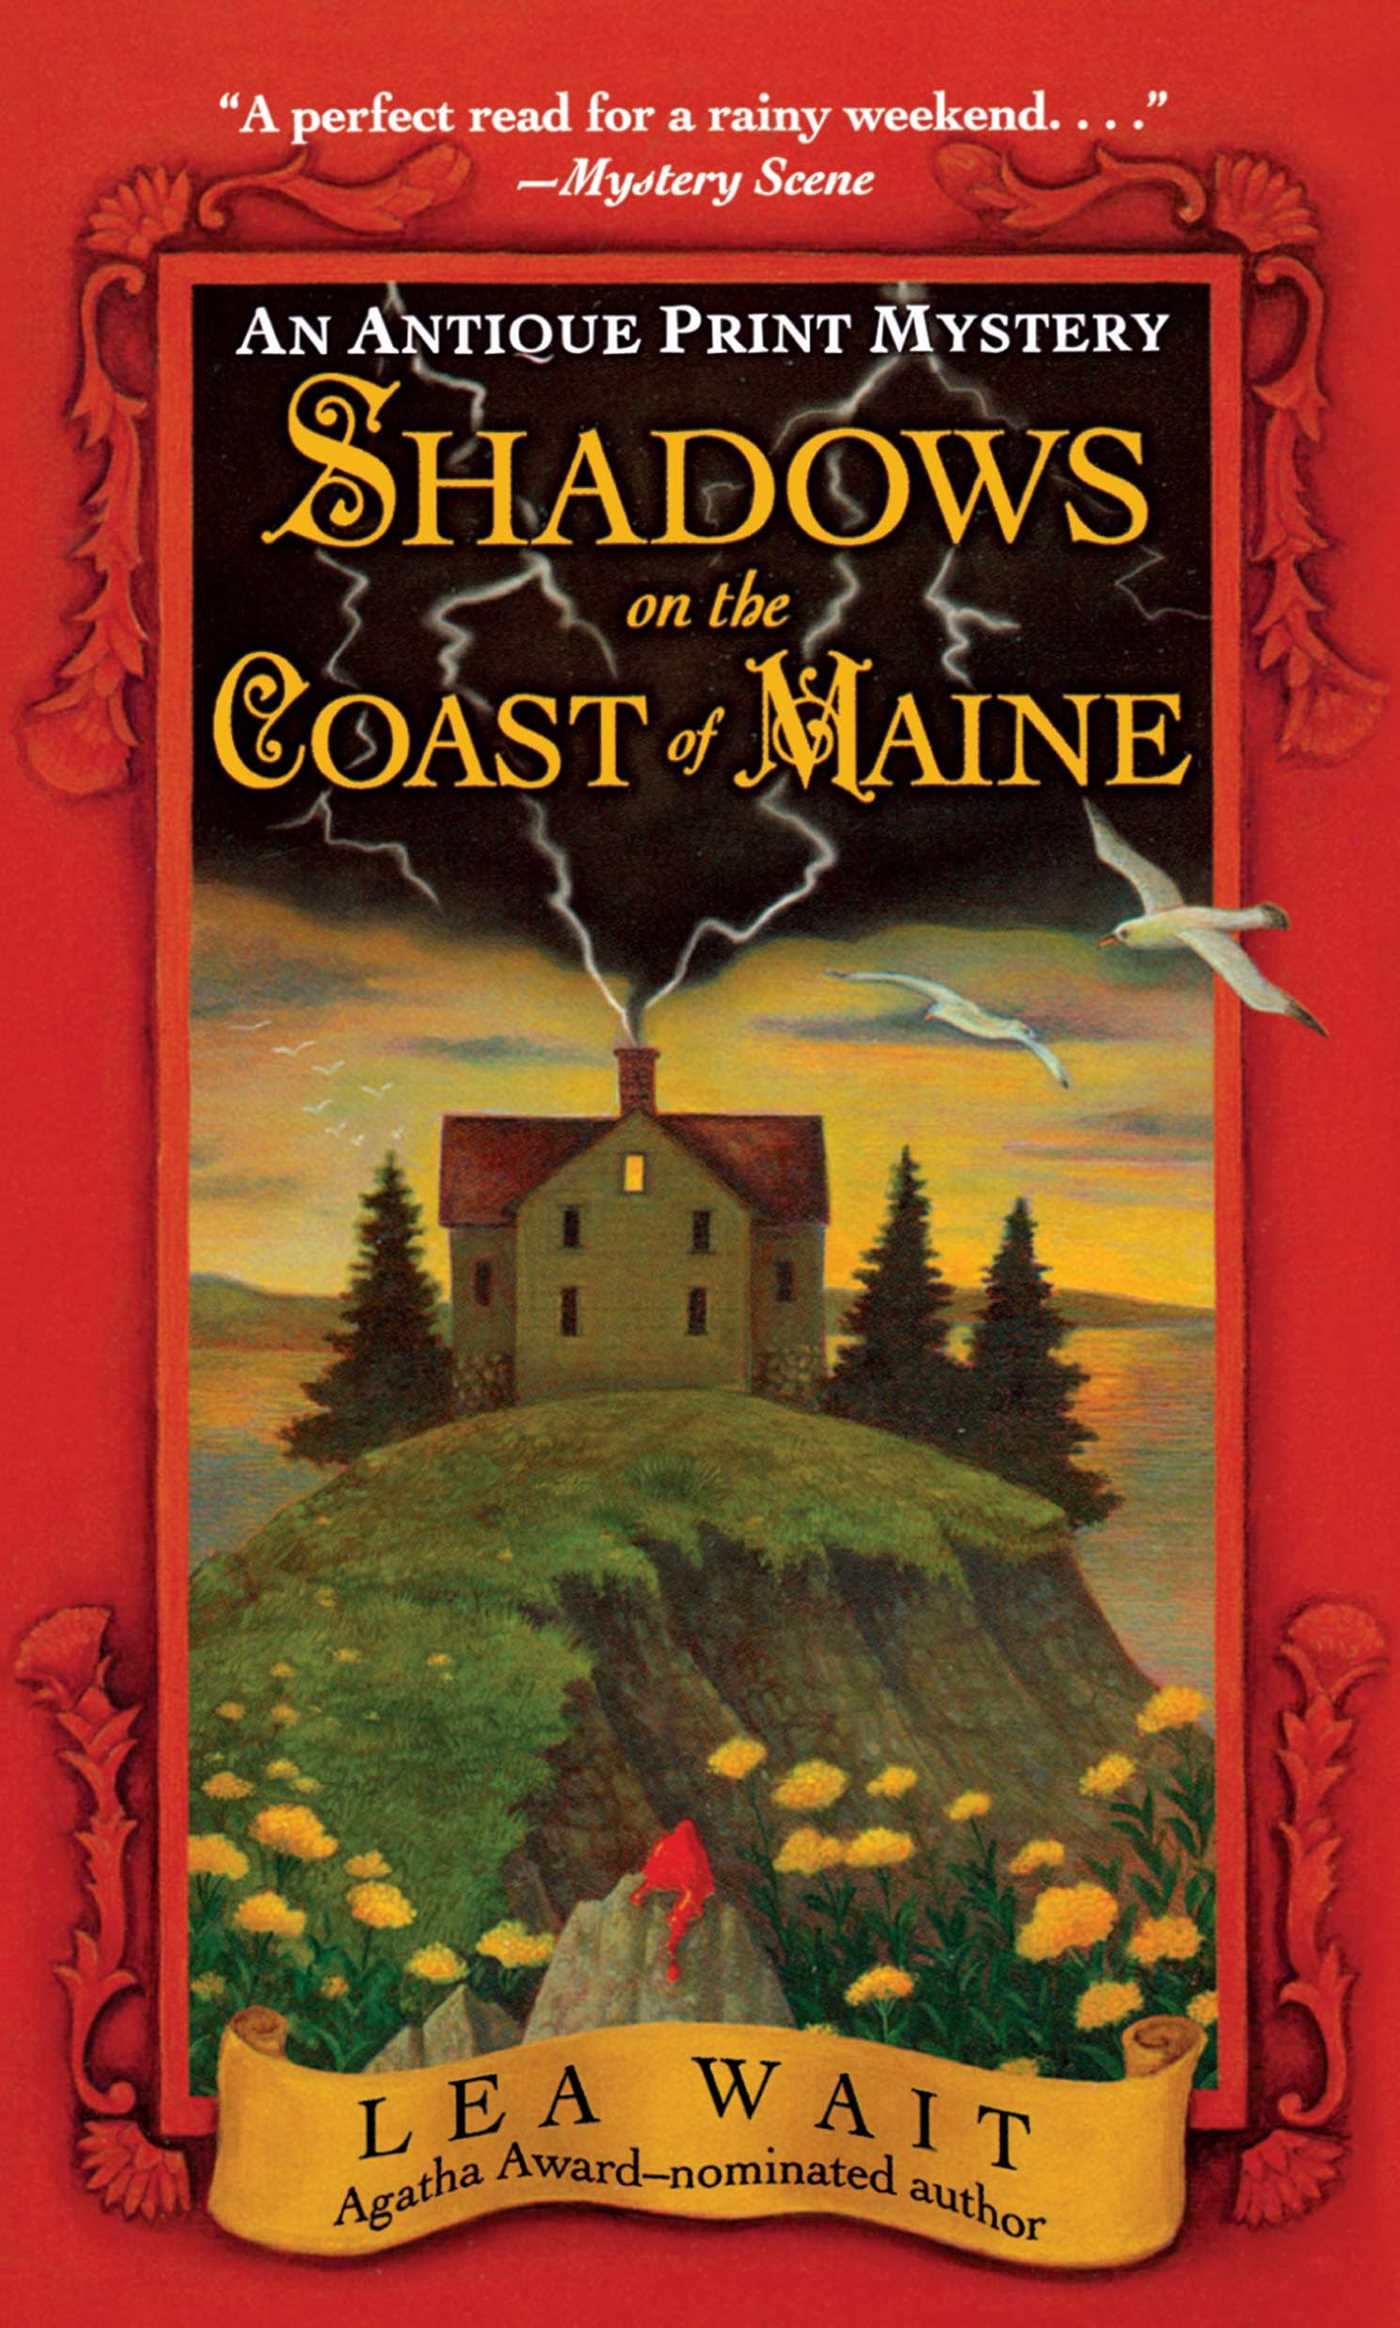 Shadows-on-the-coast-of-maine-9781416587712_hr